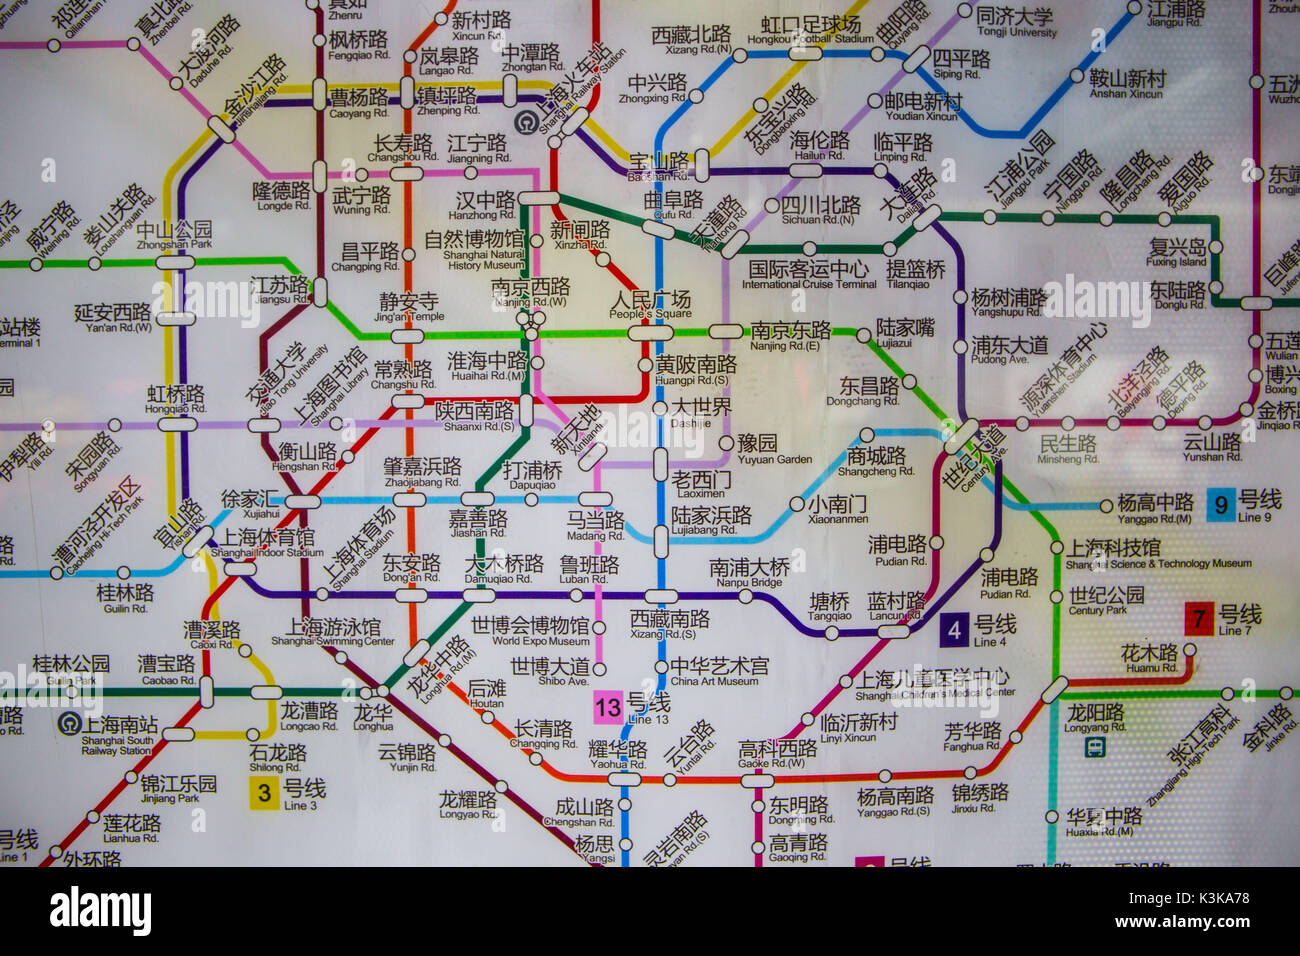 Subway Map Shanghai 2011.Map Of Shanghai Stock Photos Map Of Shanghai Stock Images Alamy